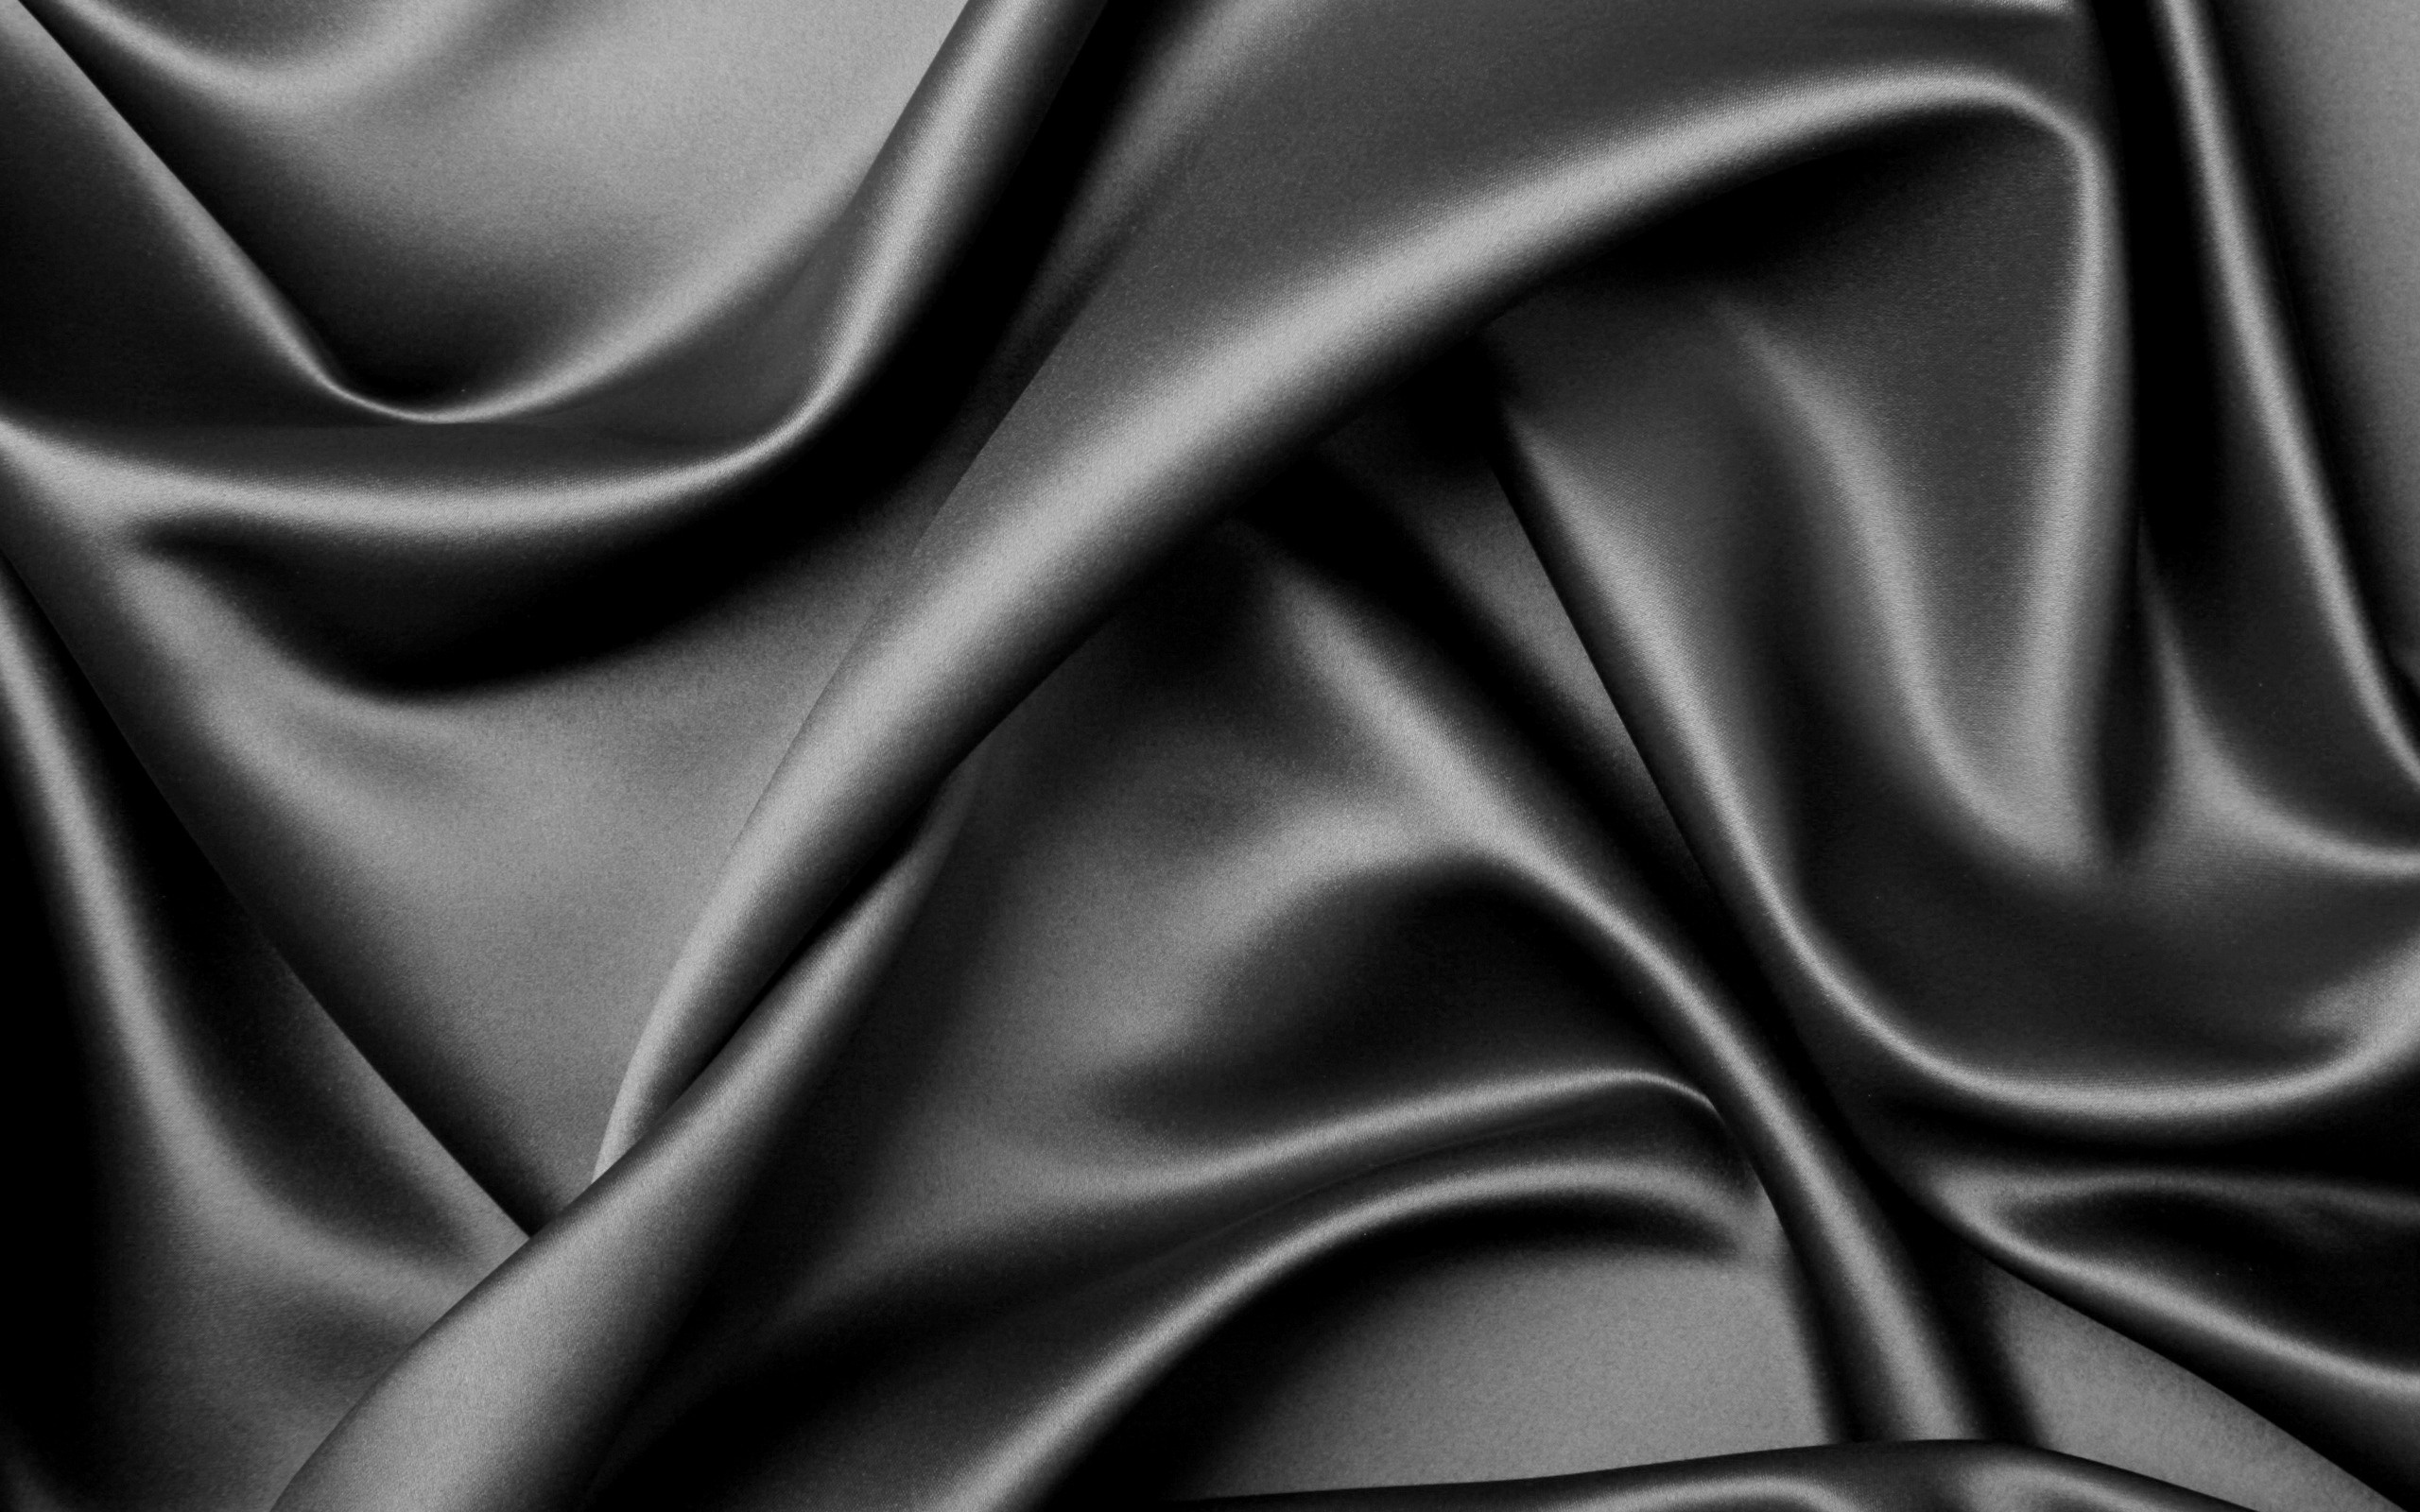 Black velvet 3d abstract wide hd desktop wallp 2374 hd for Black and white wallpaper 3d